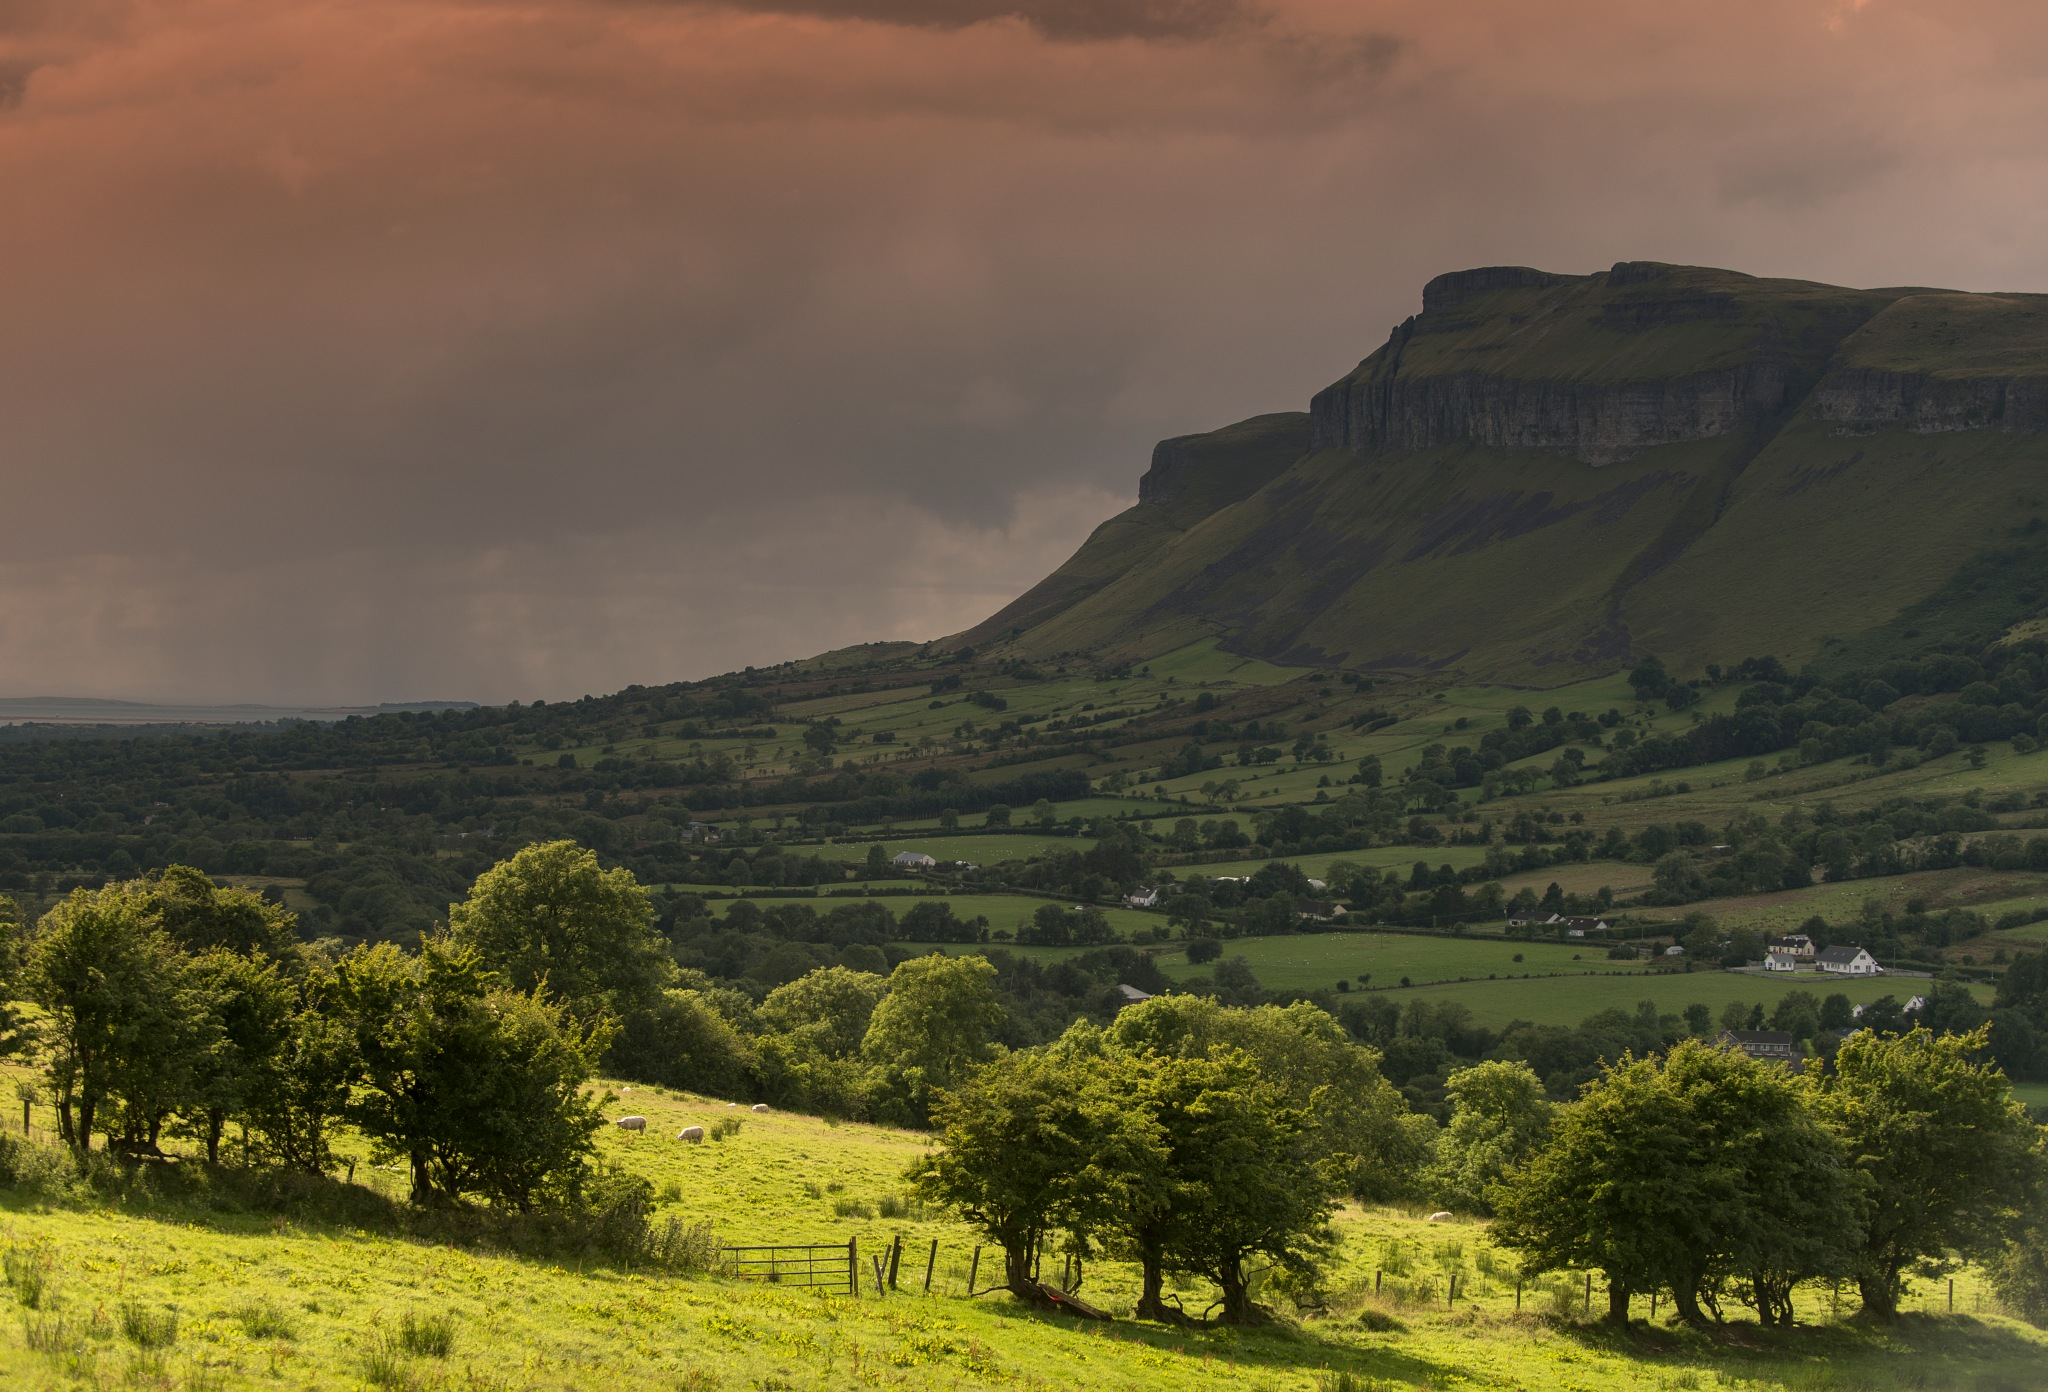 Sligo by mik70